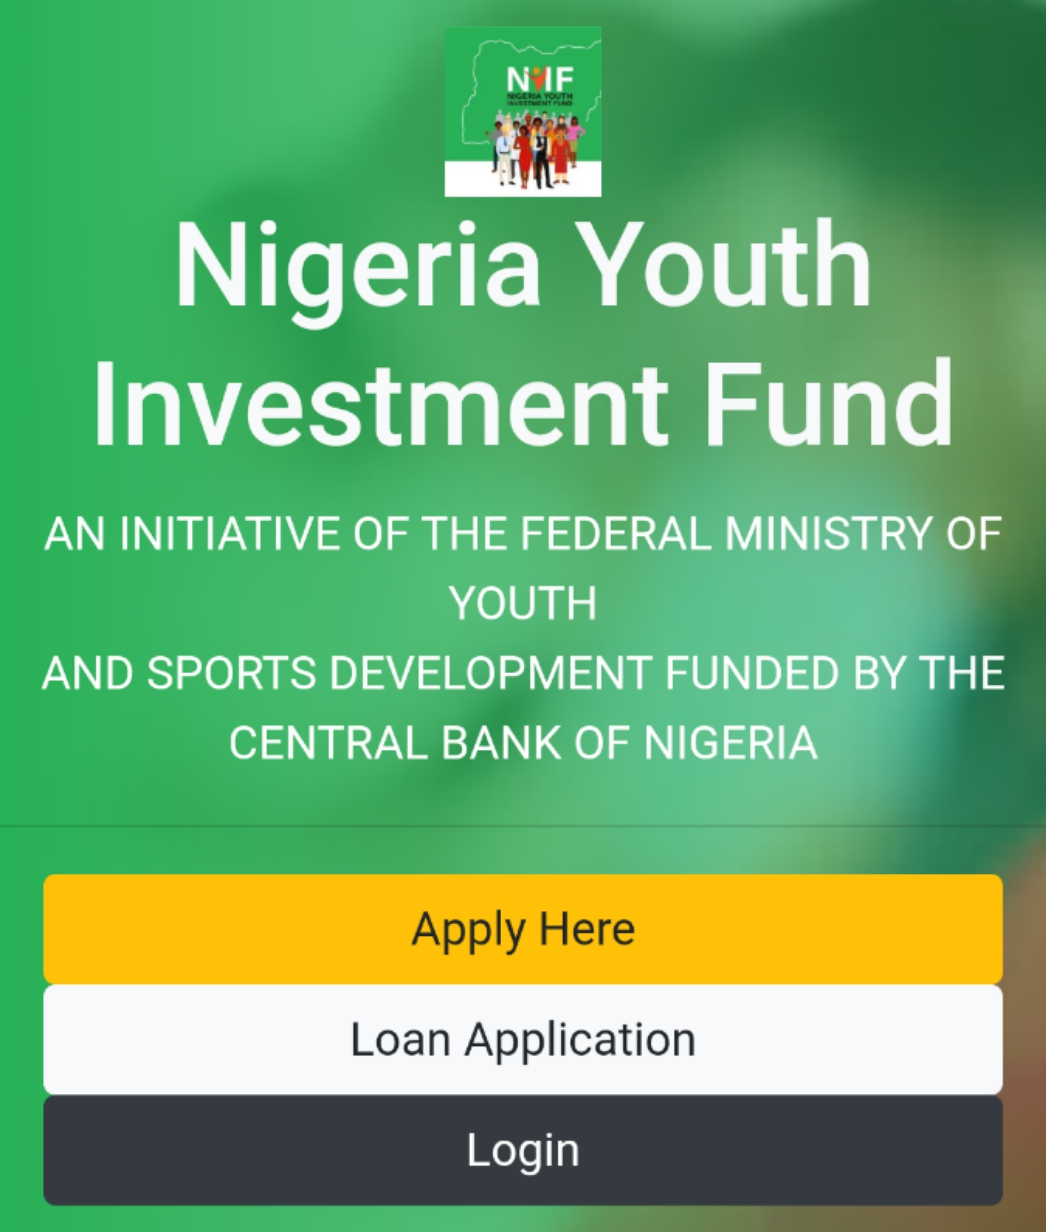 NYIF: Here is How To Know If You've Been Shortlisted. Read If You've Not Been Paid